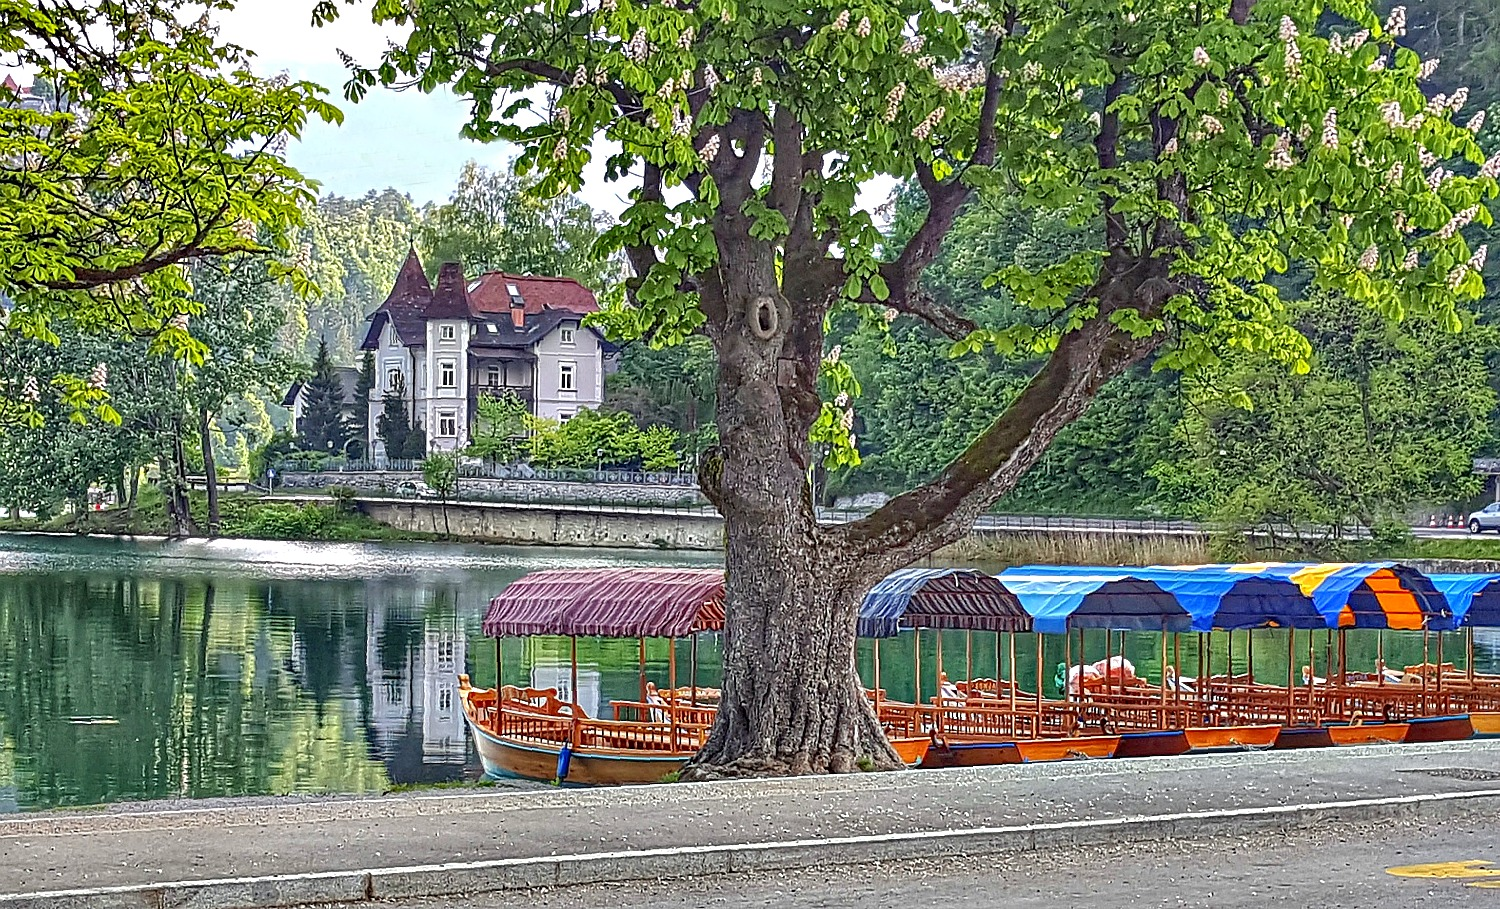 Morning view of the boats in Lake Bled Slovenia.